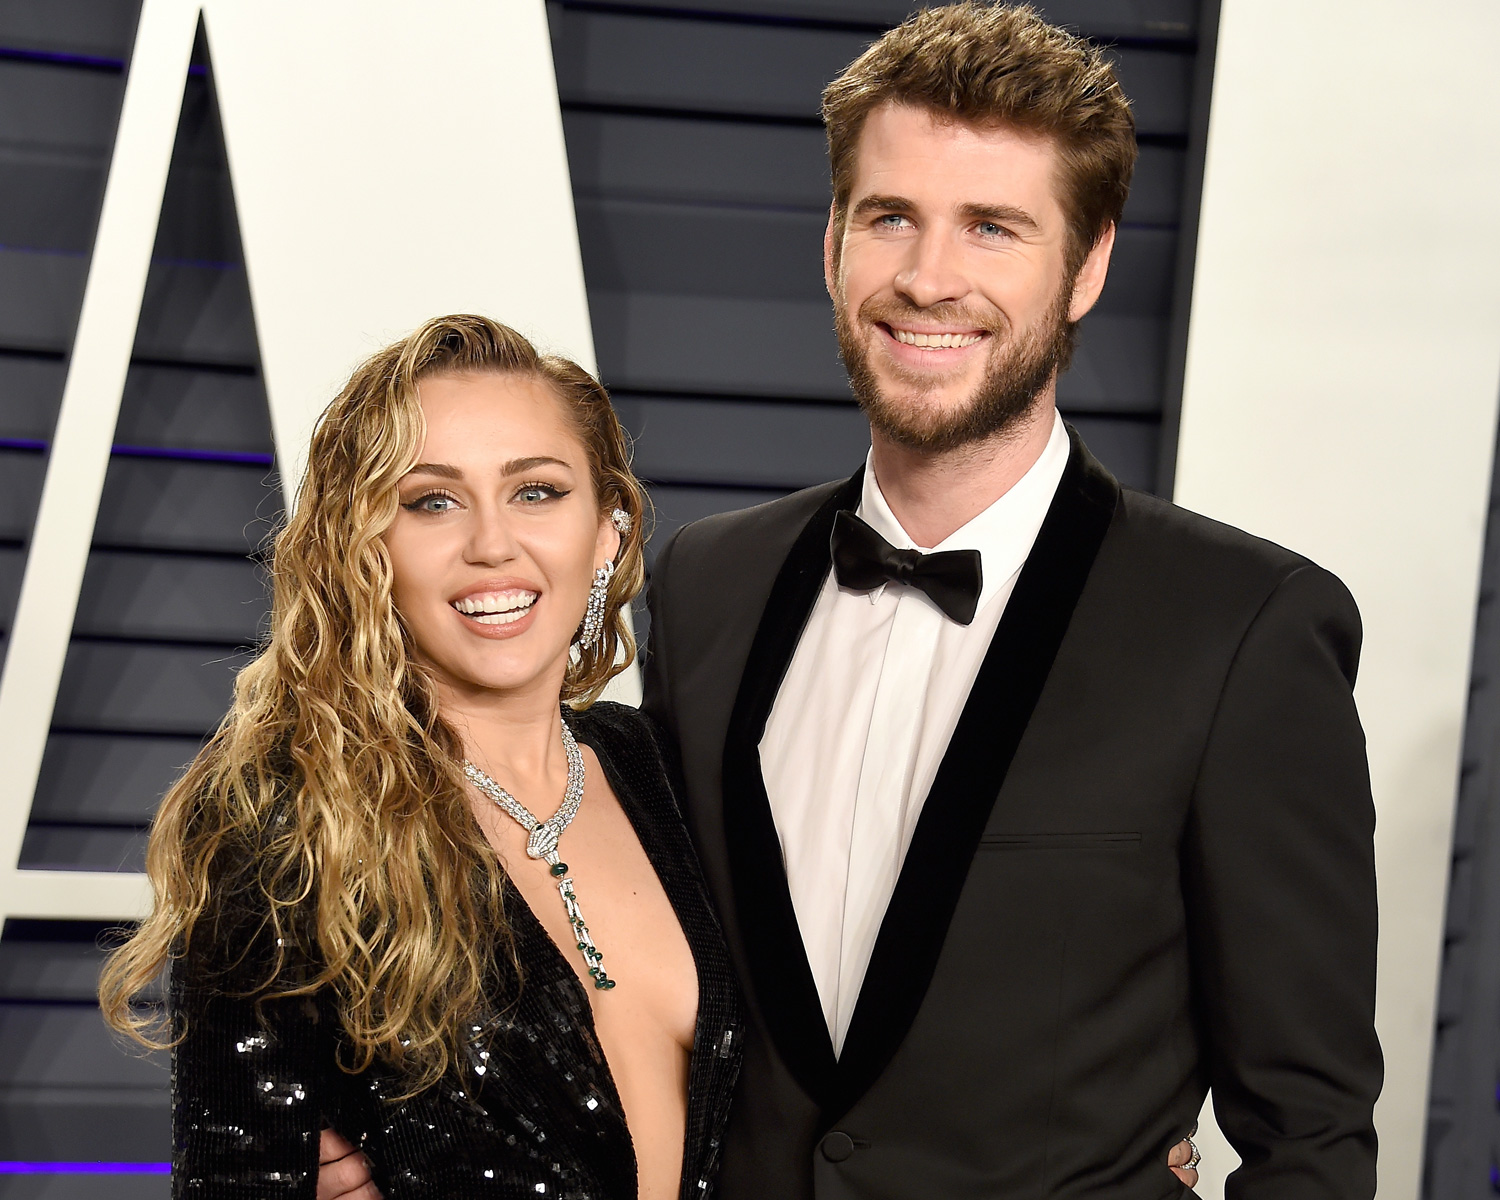 Perchè è finita tra Miley Cyrus e Liam Hemsworth?